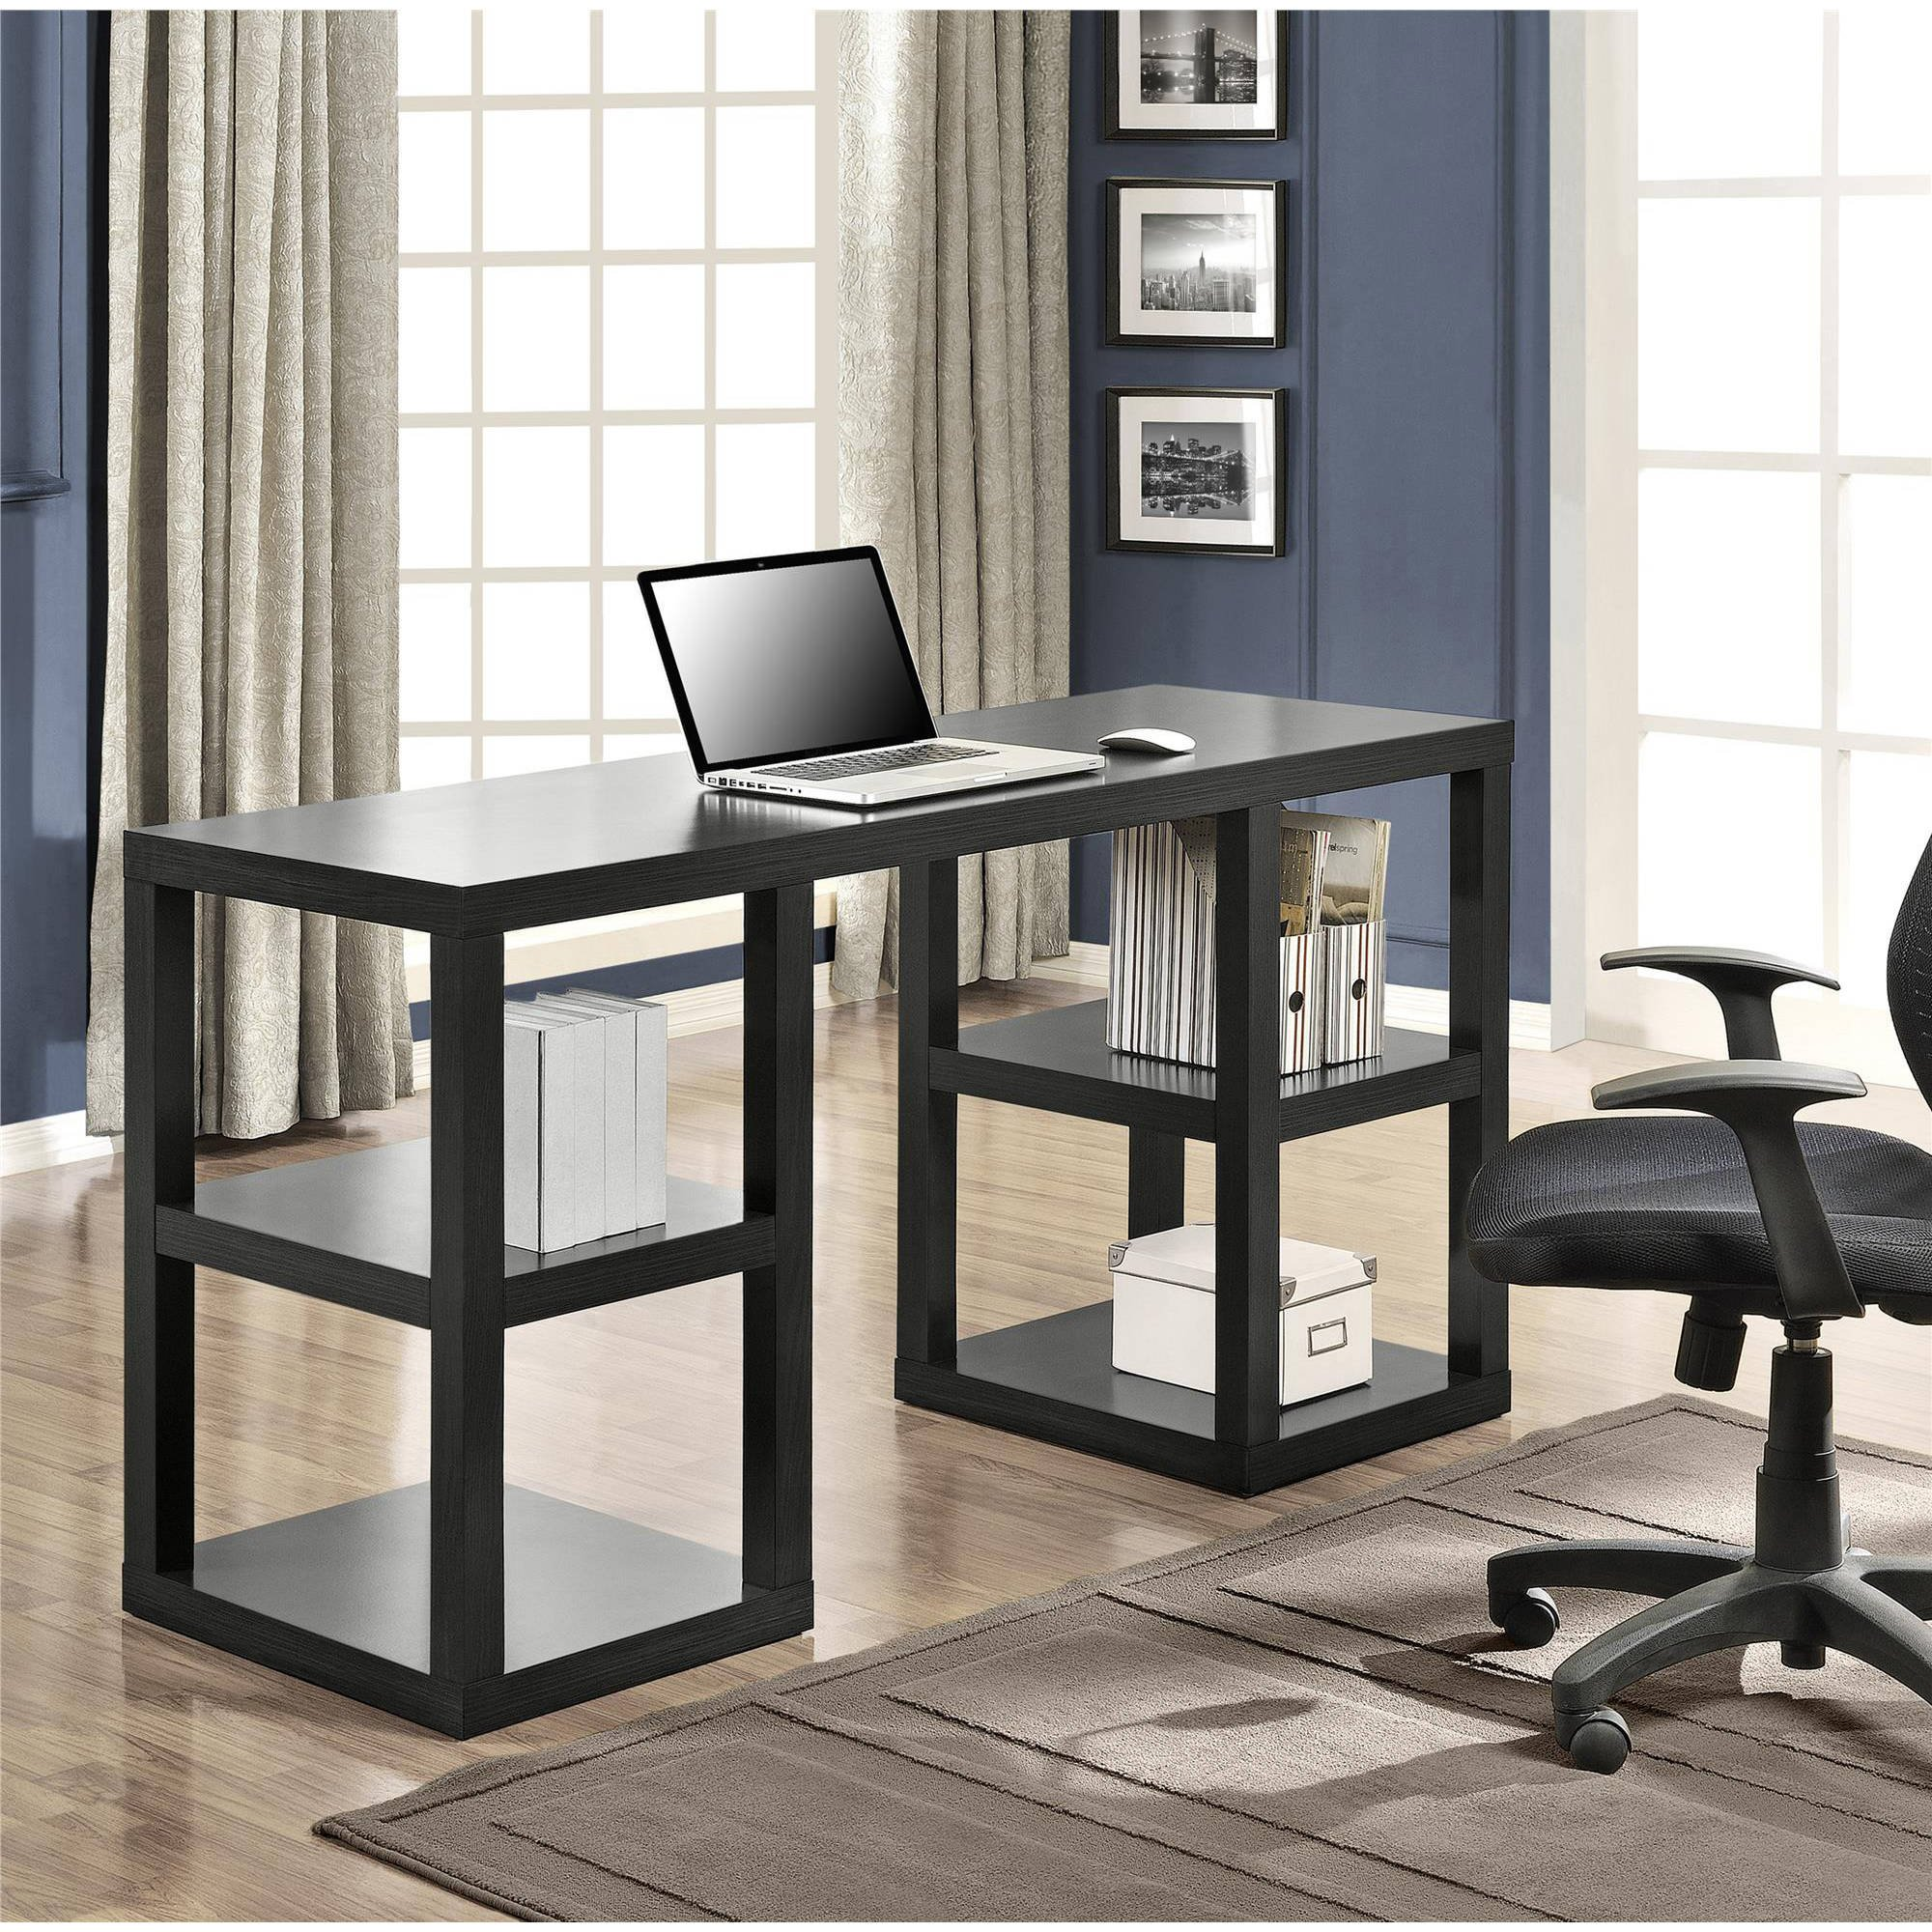 Wooden Double Pedestal Parsons Desk, large Workspace suitable for both laptop and computer use, Contemporary design, Good furniture for Office and Home use, Multiple Colors ( 60''W x 21-5/8''D x 32''H)